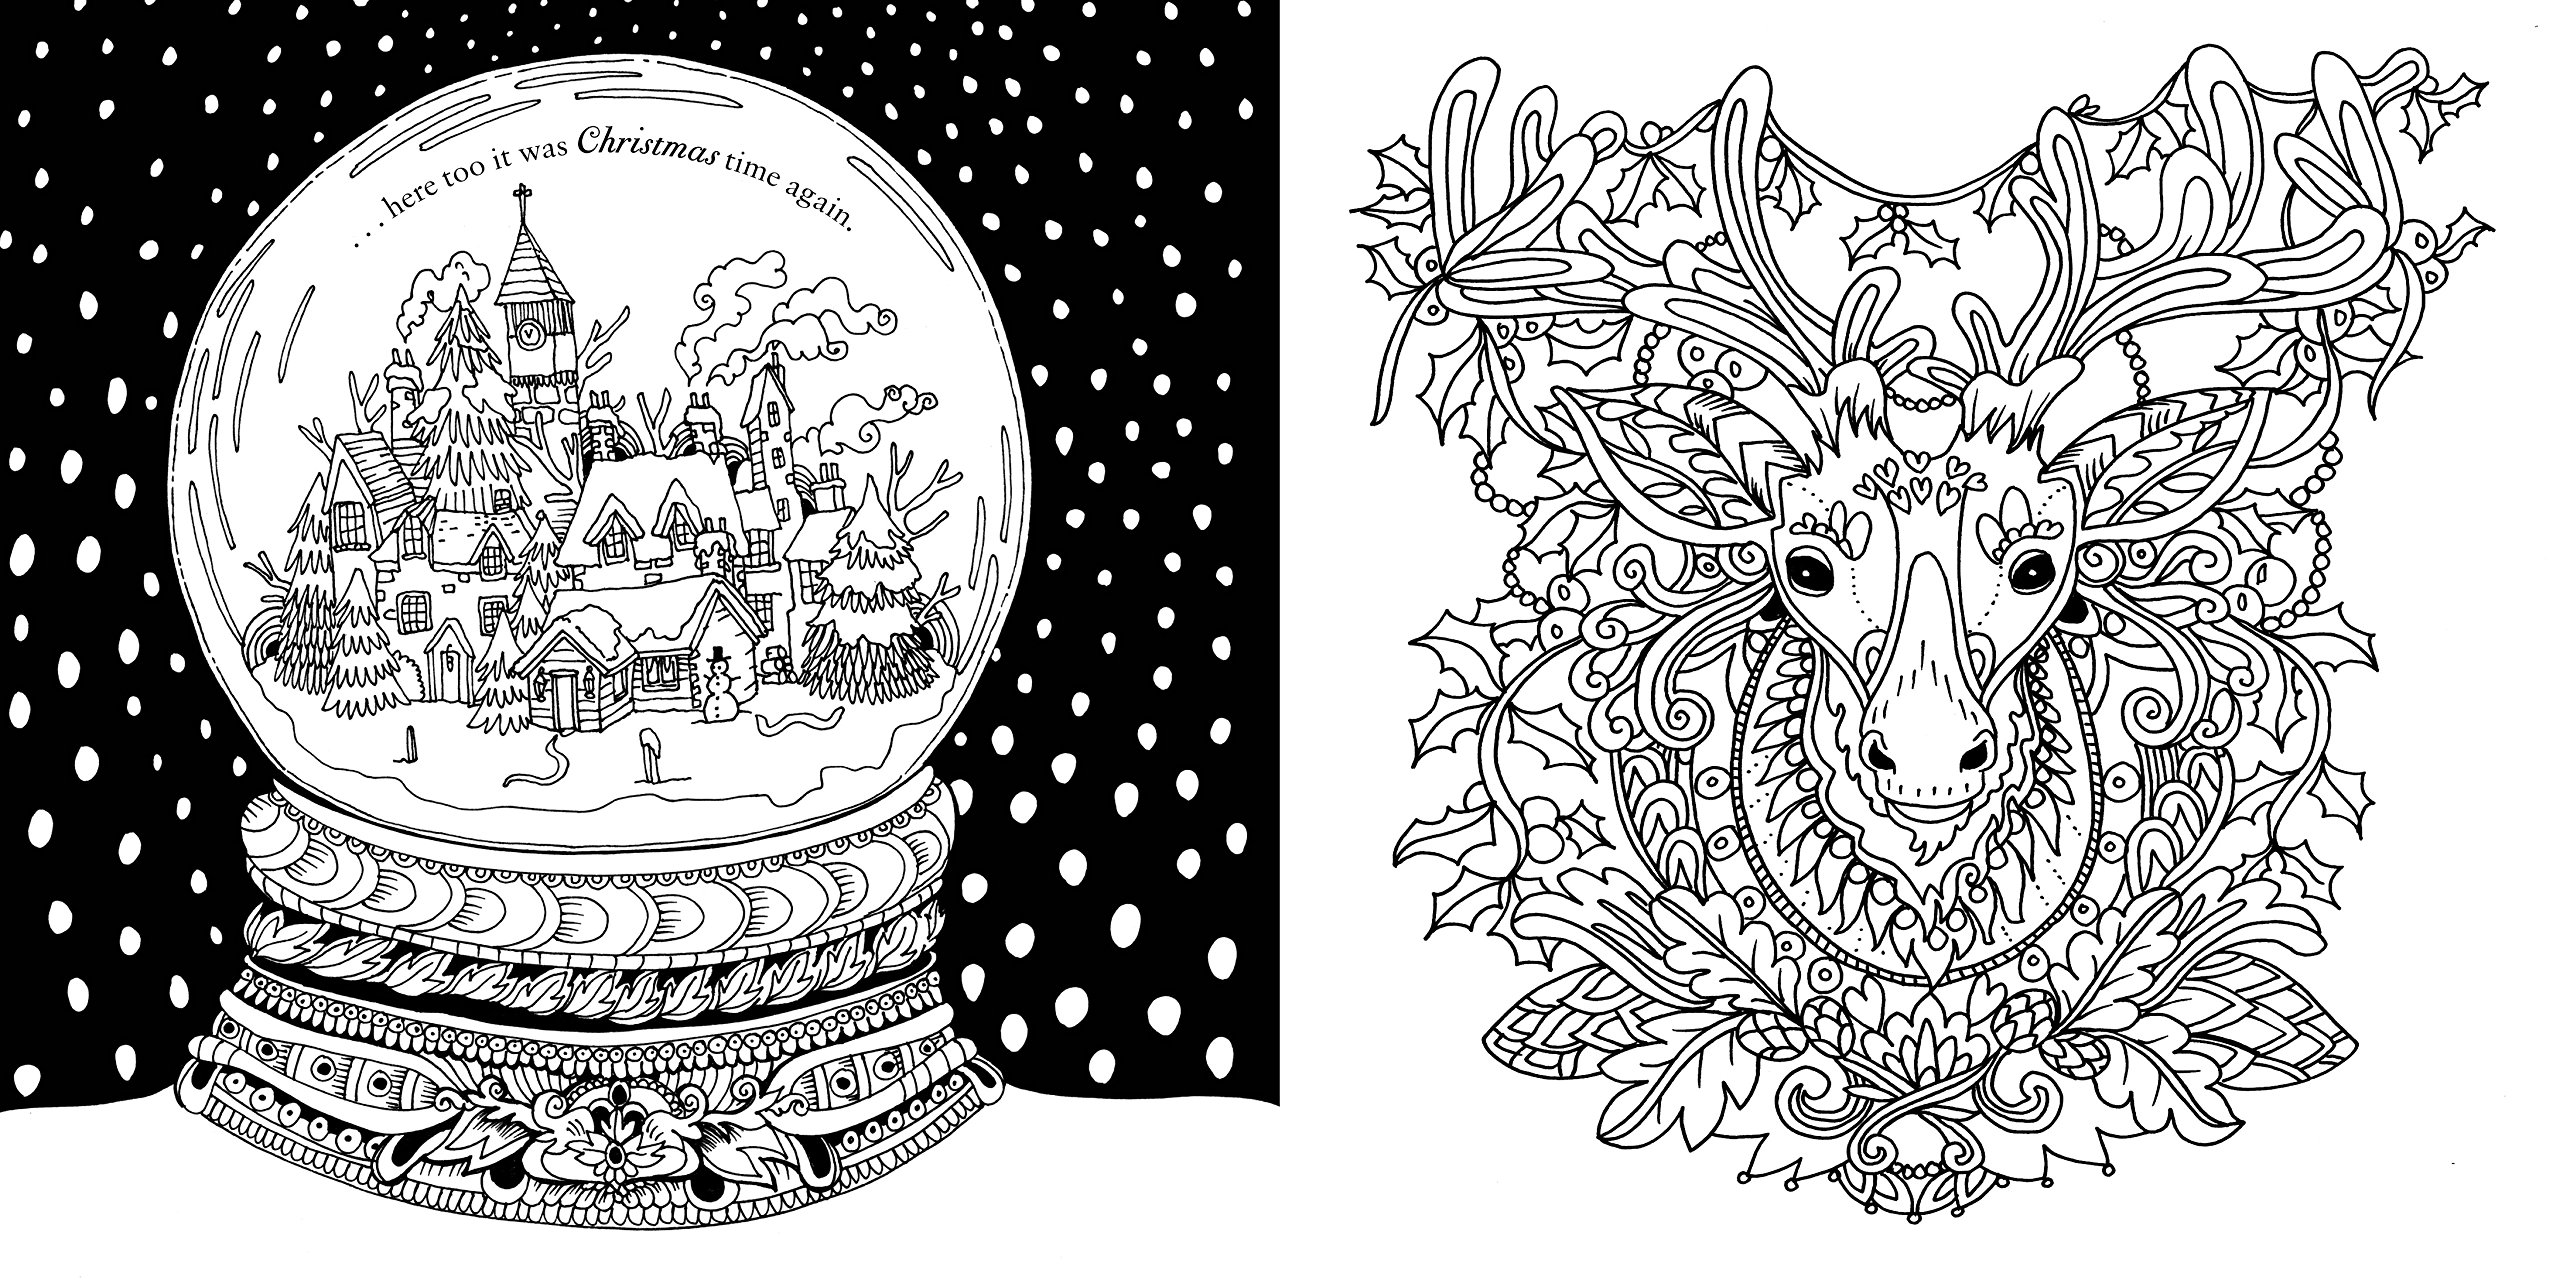 Johanna S Christmas Coloring Pages With Escape To Past A Colouring Book Adventure Good Wives And